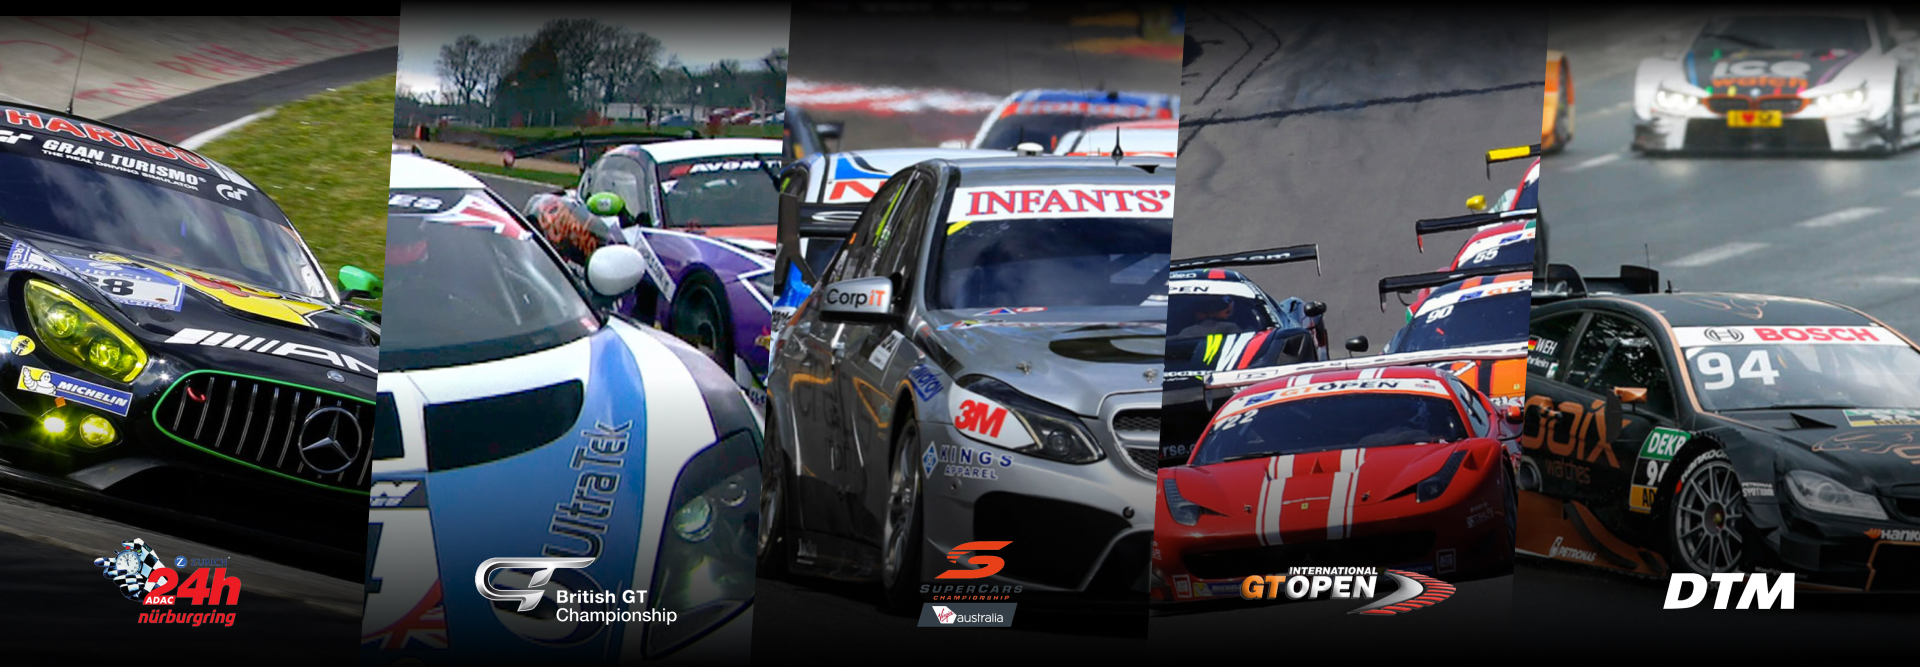 Watch Car Tv Shows Motorsports Online Auto Tv Shows On